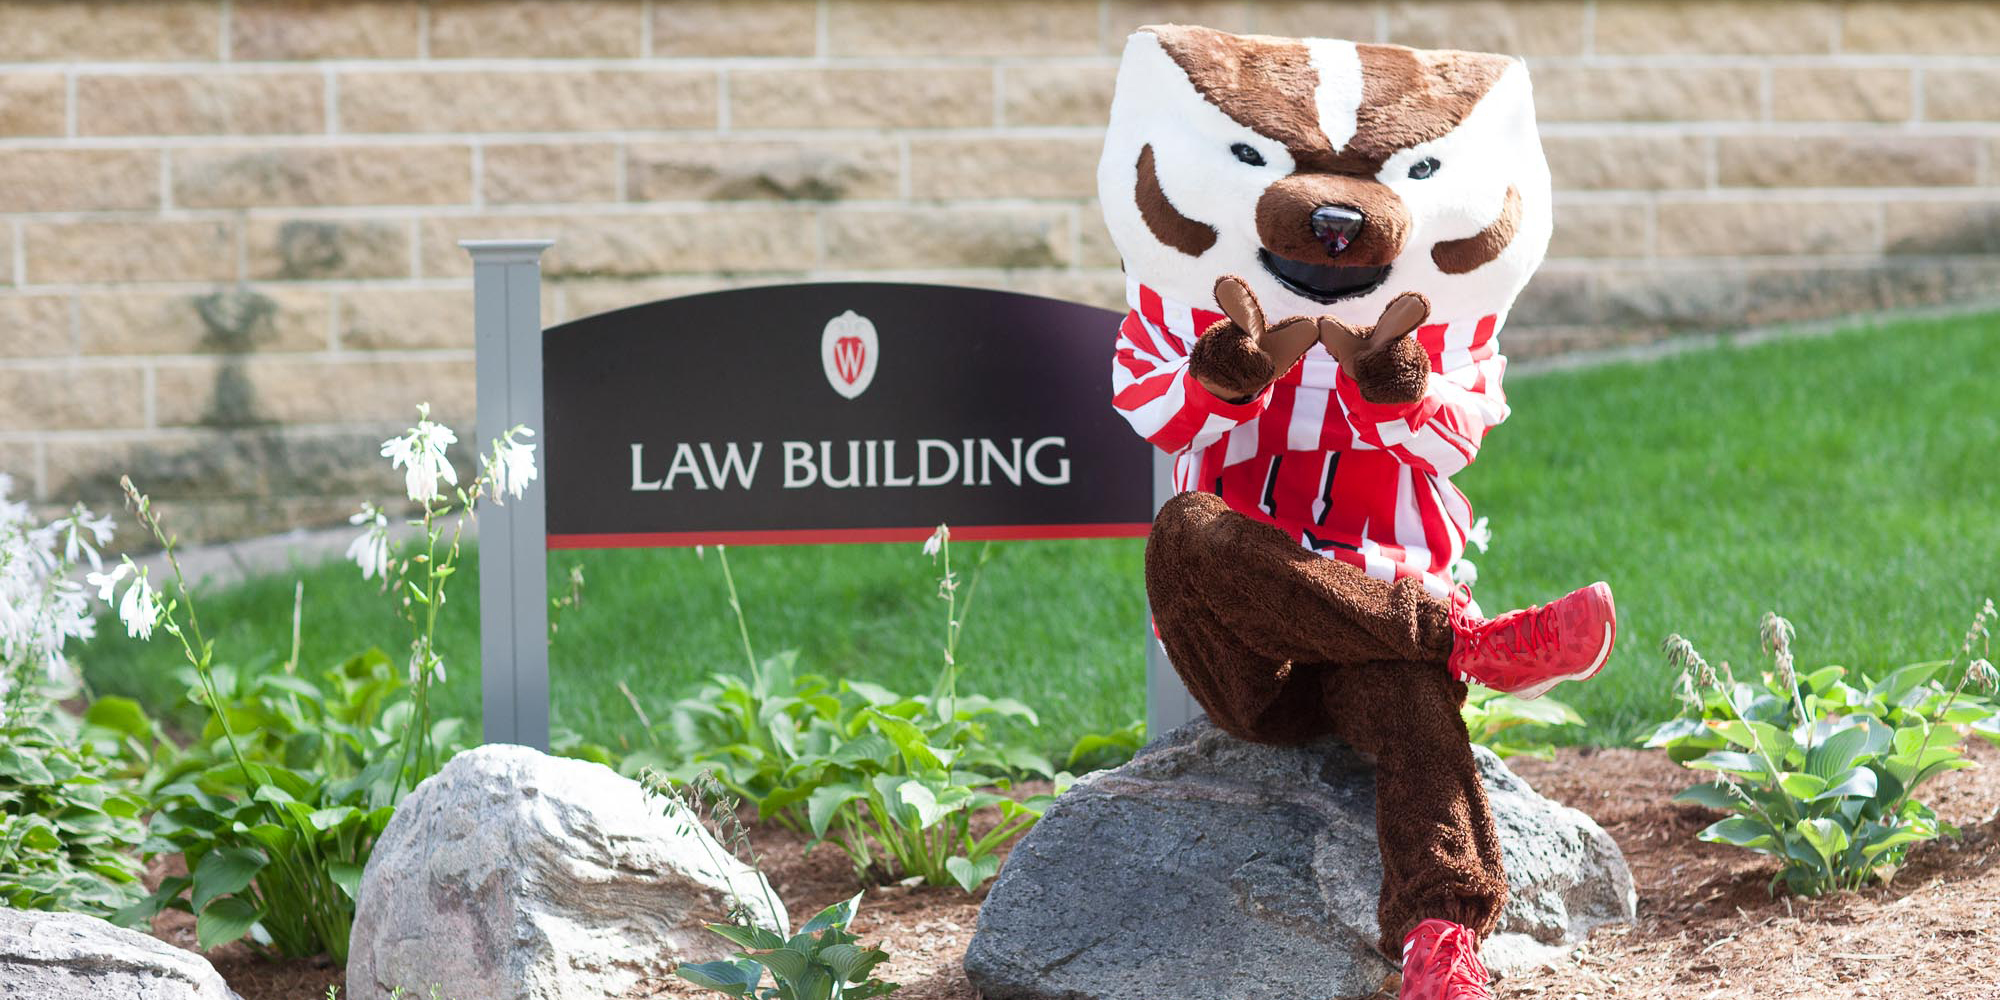 Bucky Badger with Law Building sign